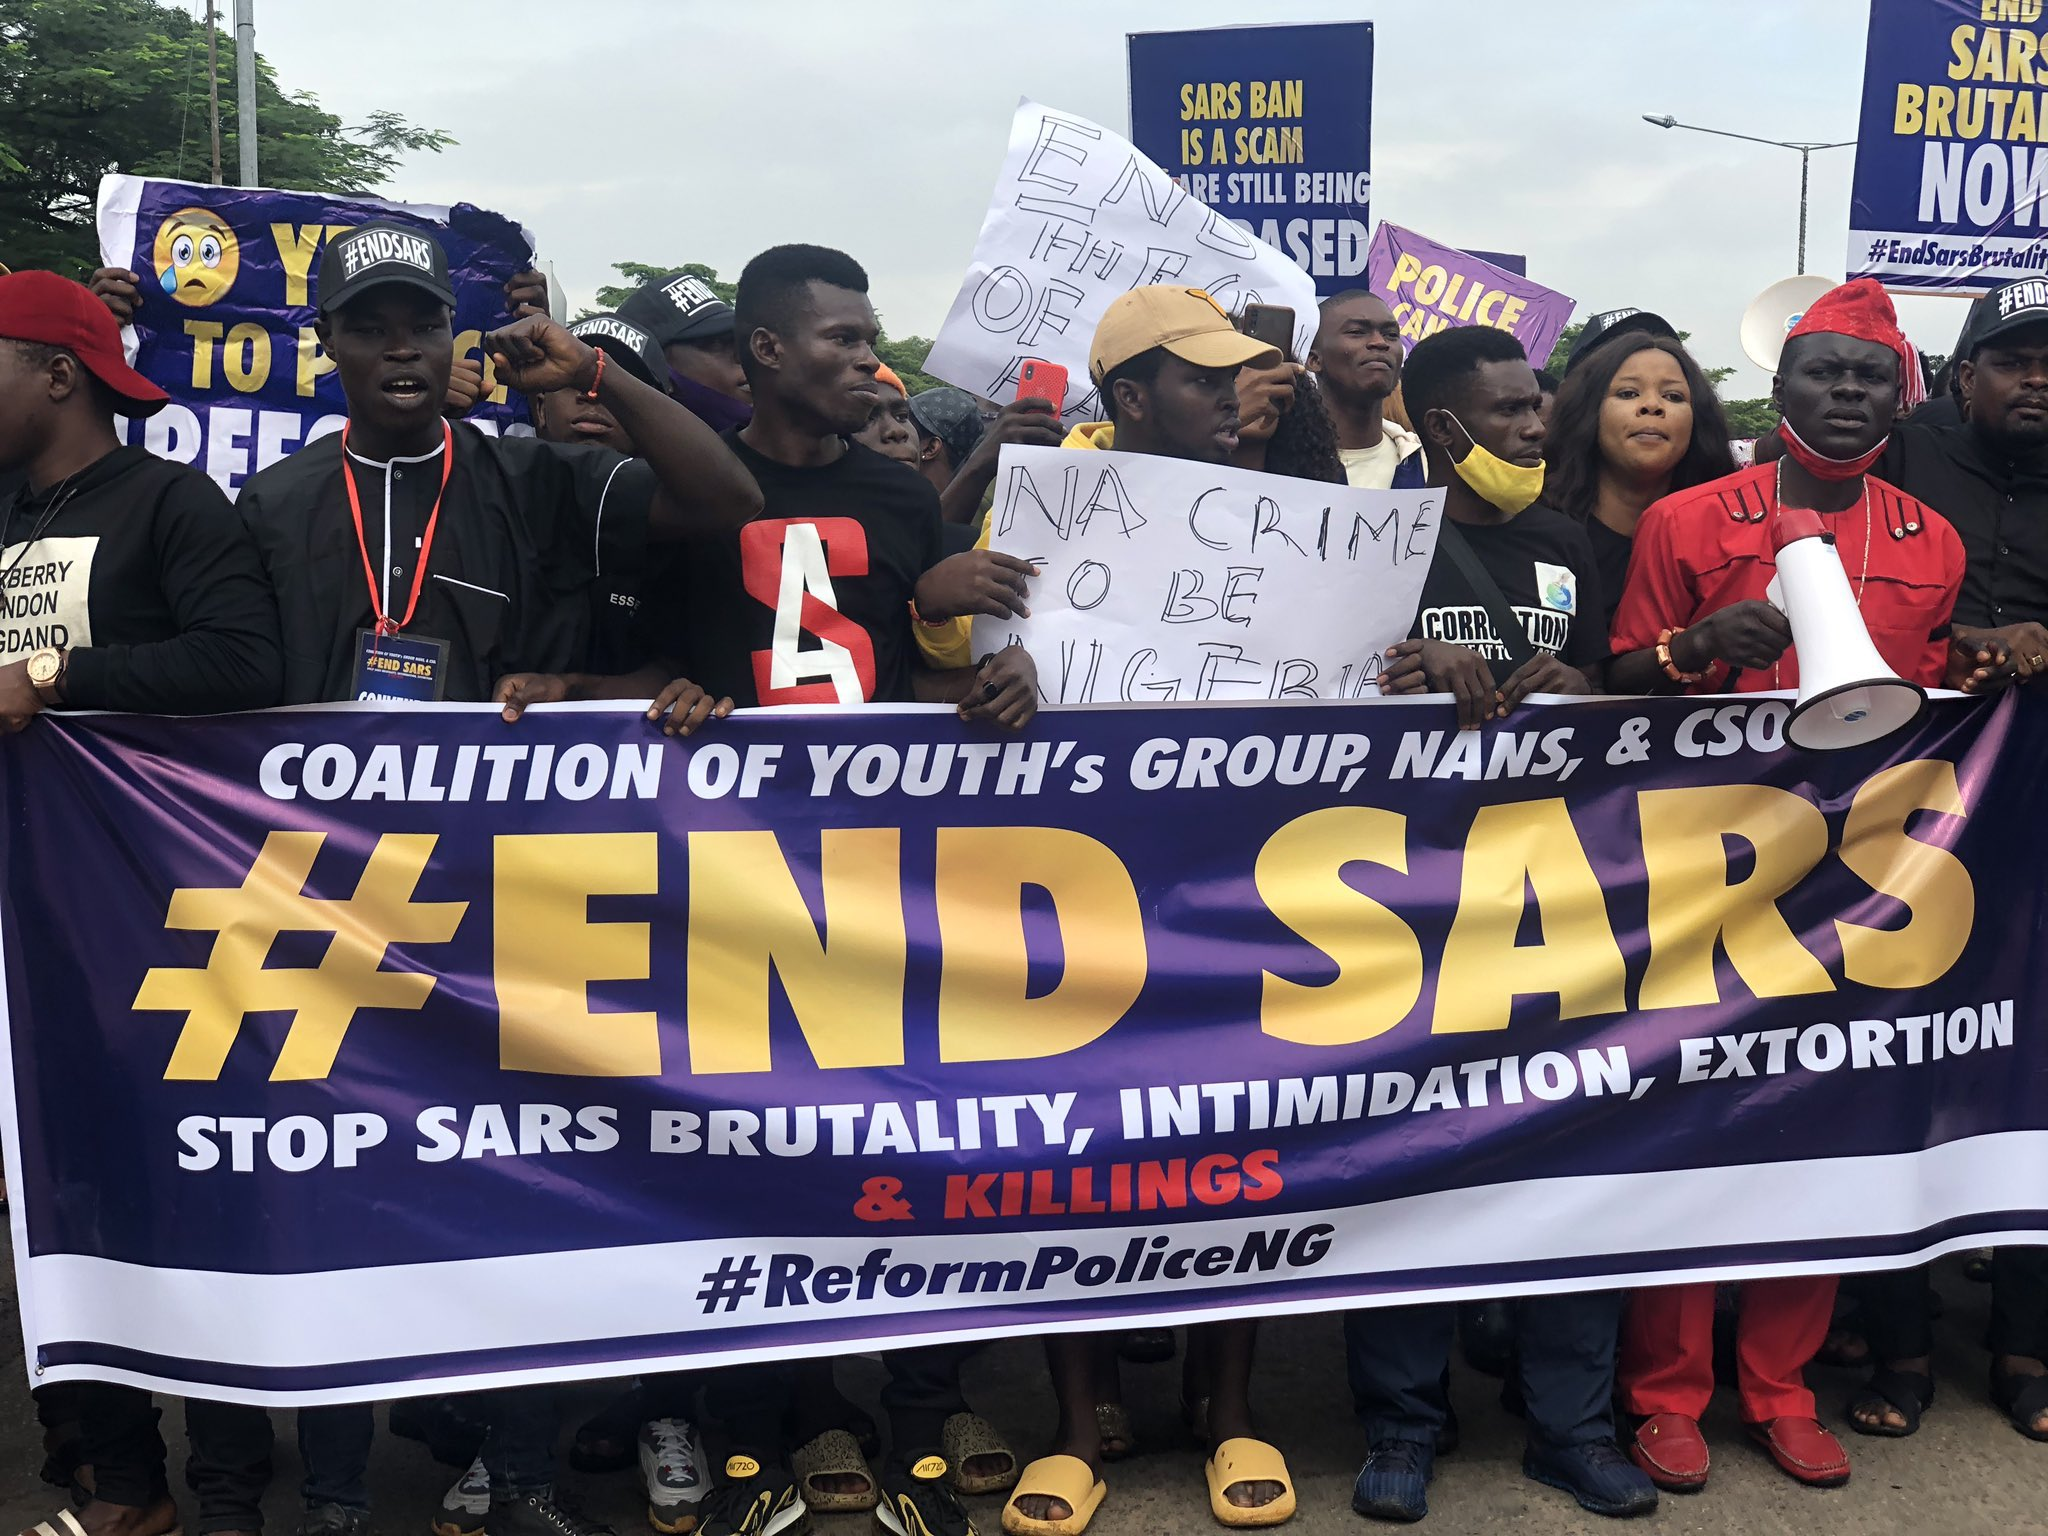 Protesters storm the streets to demand the dissolution of SARS, bearing placards and banners reading #EndSARS.